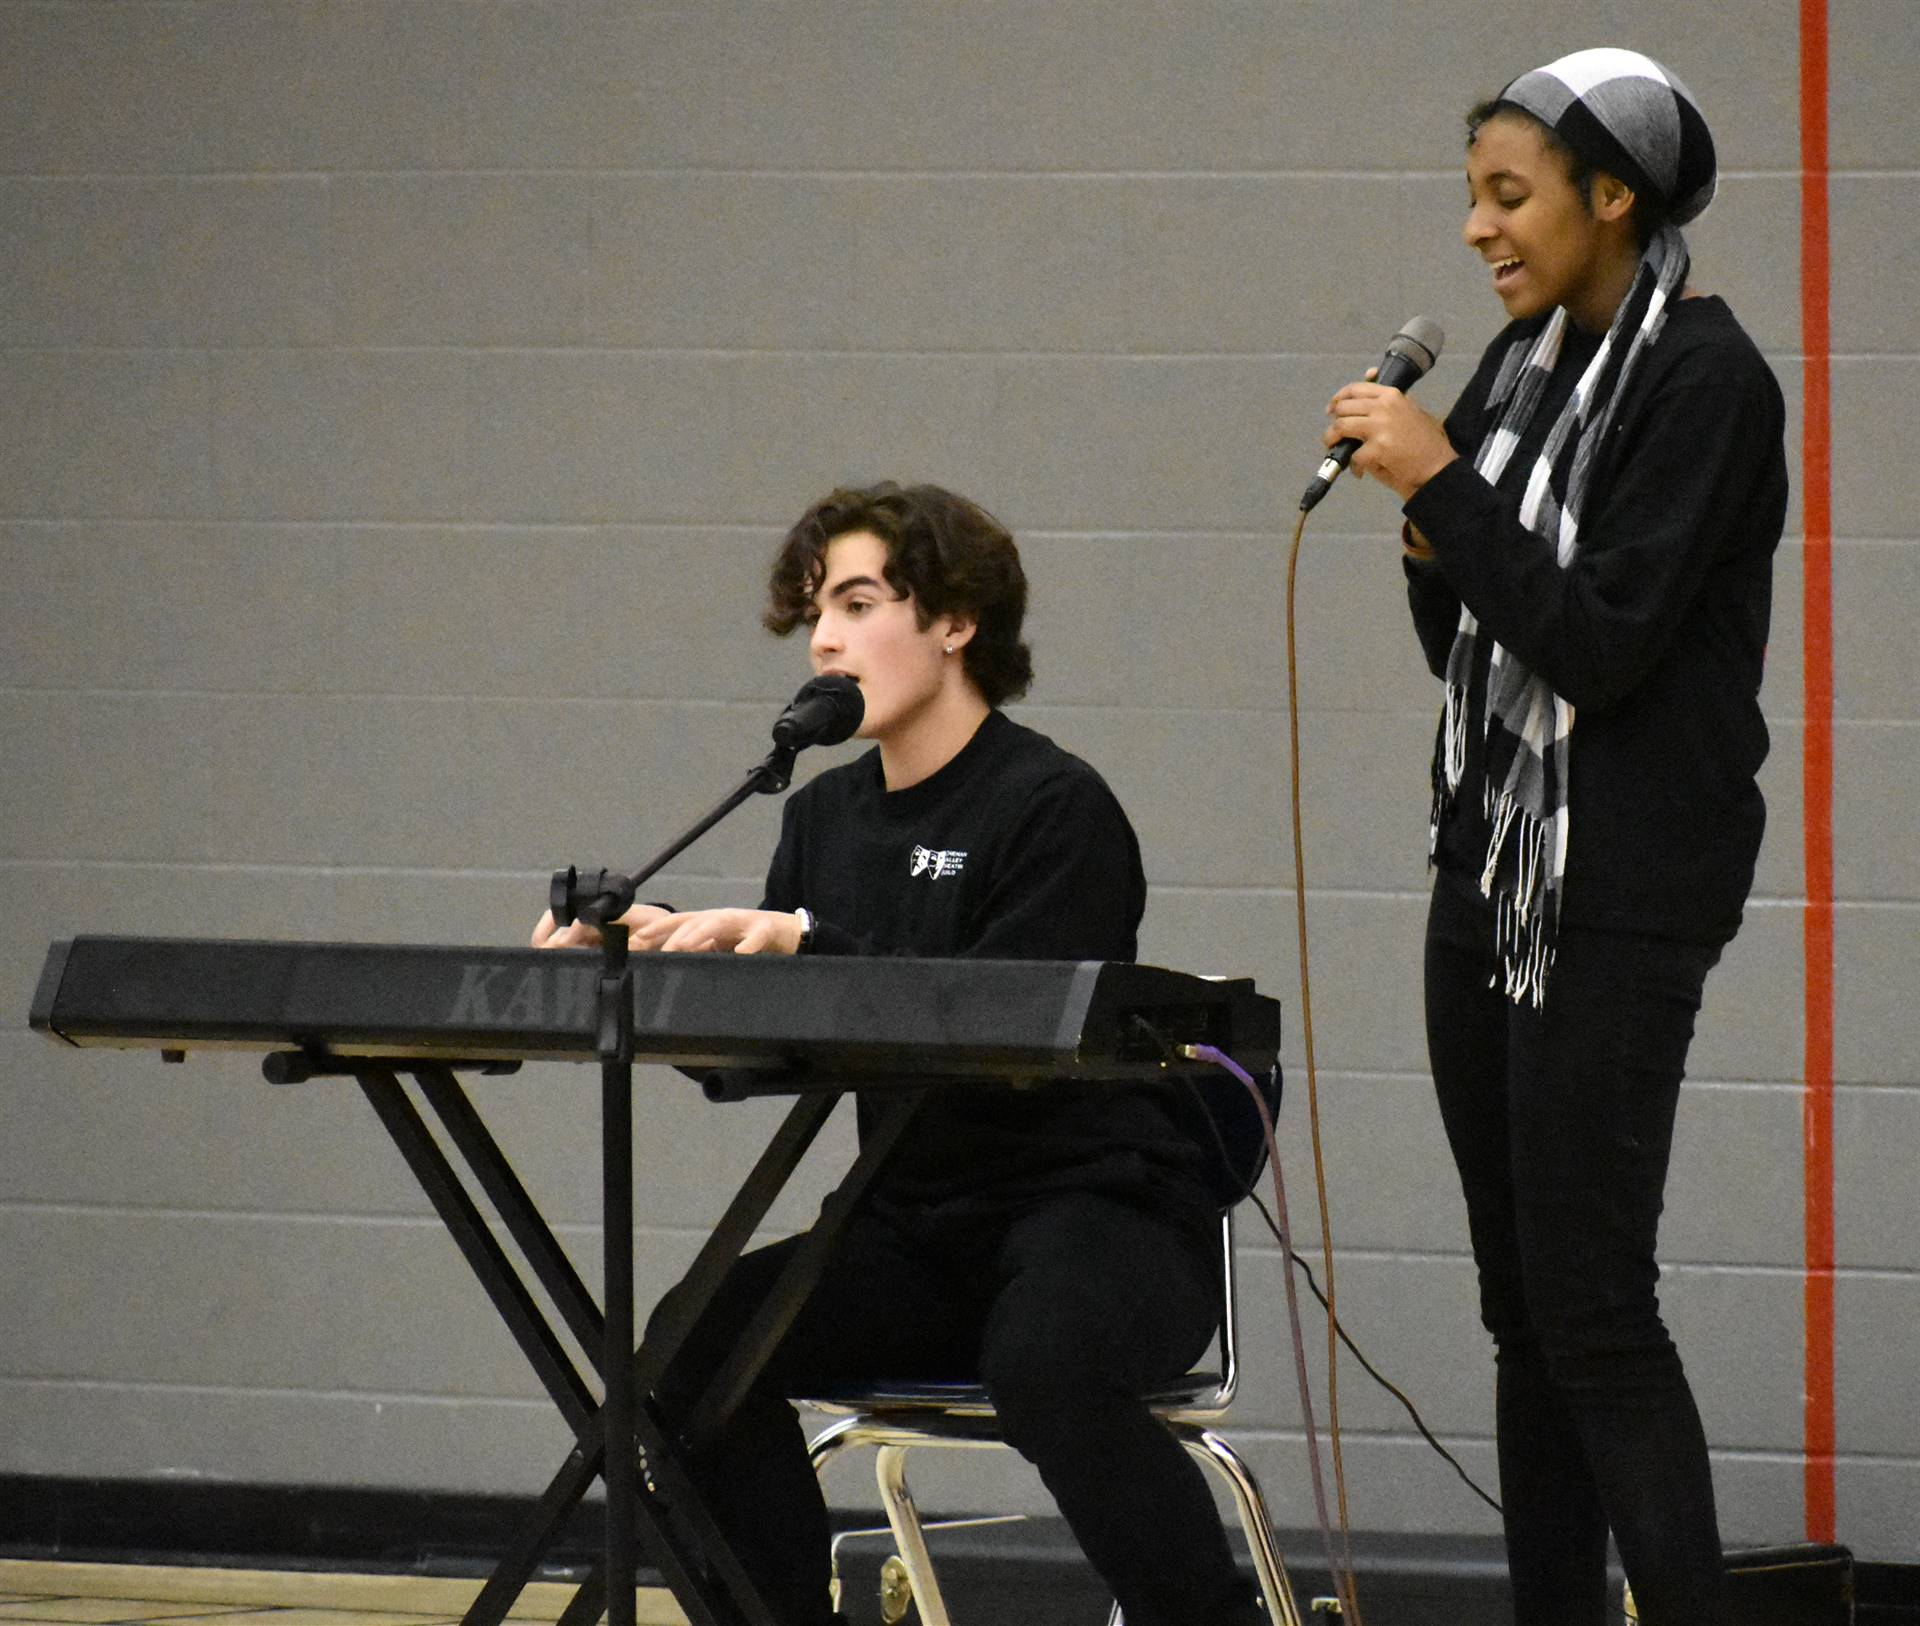 person singing and person playing piano and singing at big gifted give event